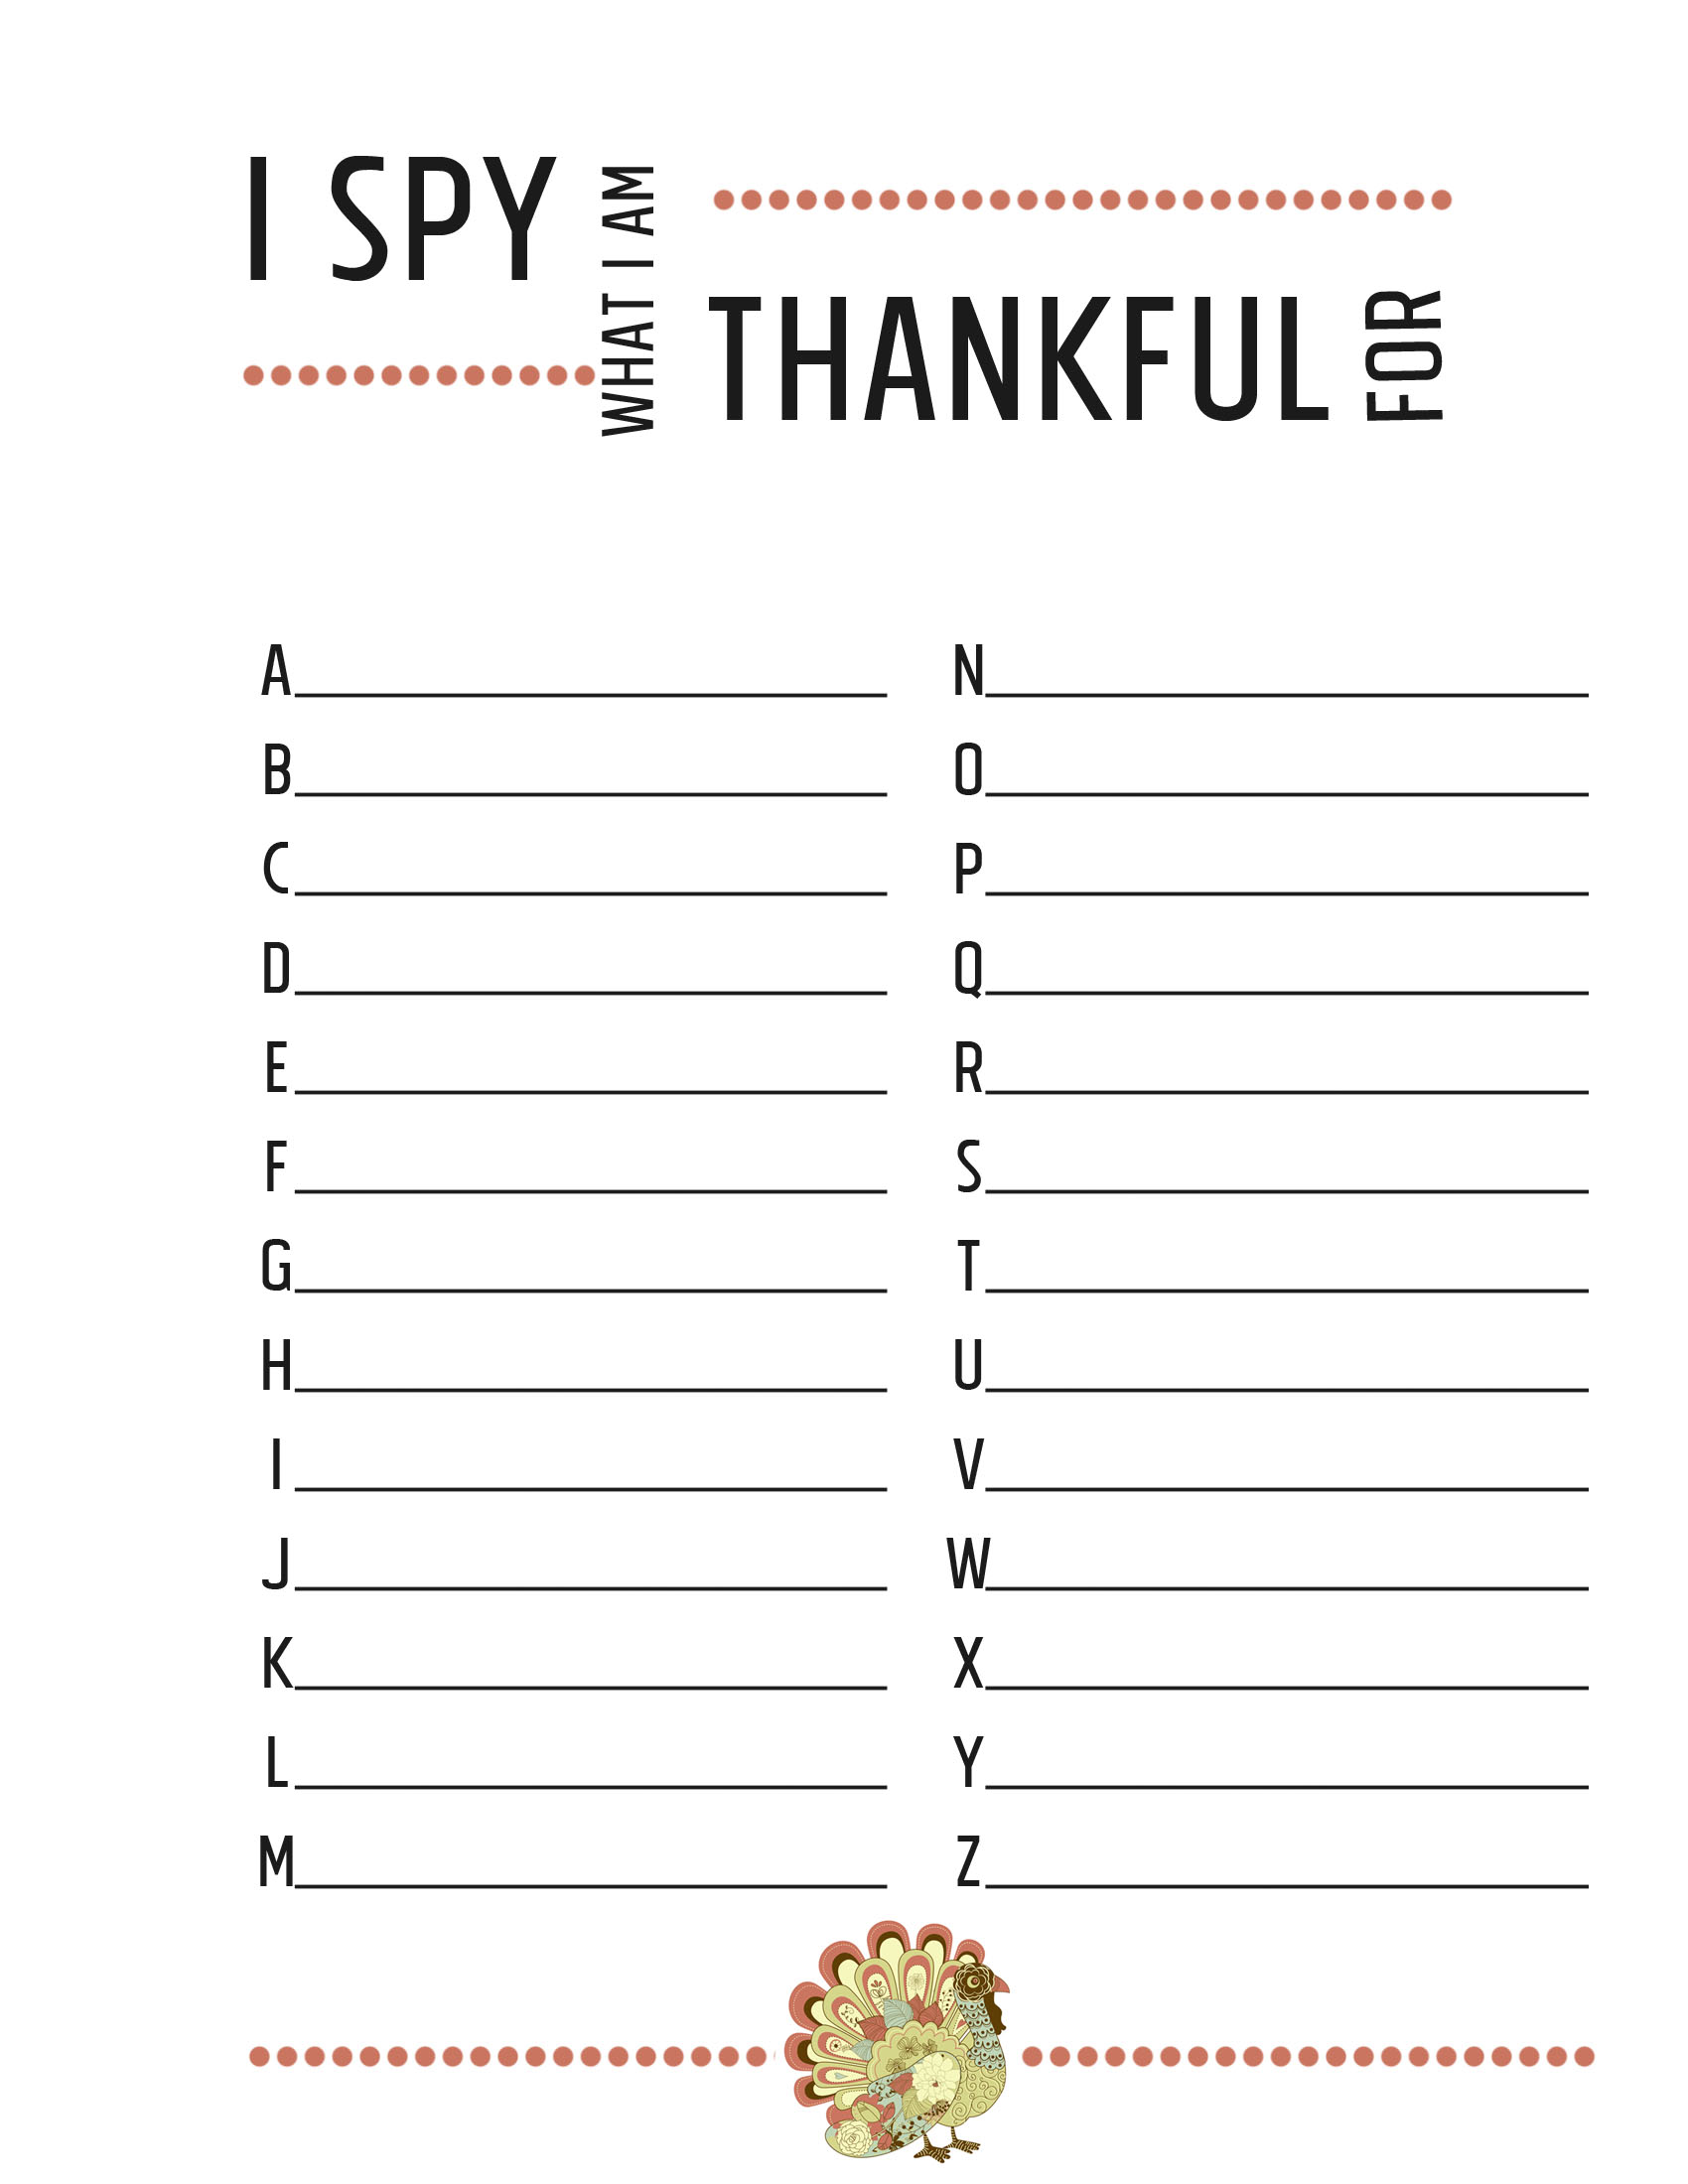 Worksheet Thanksgiving Worksheets thanksgiving worksheets free printables jessicalynette com worksheets